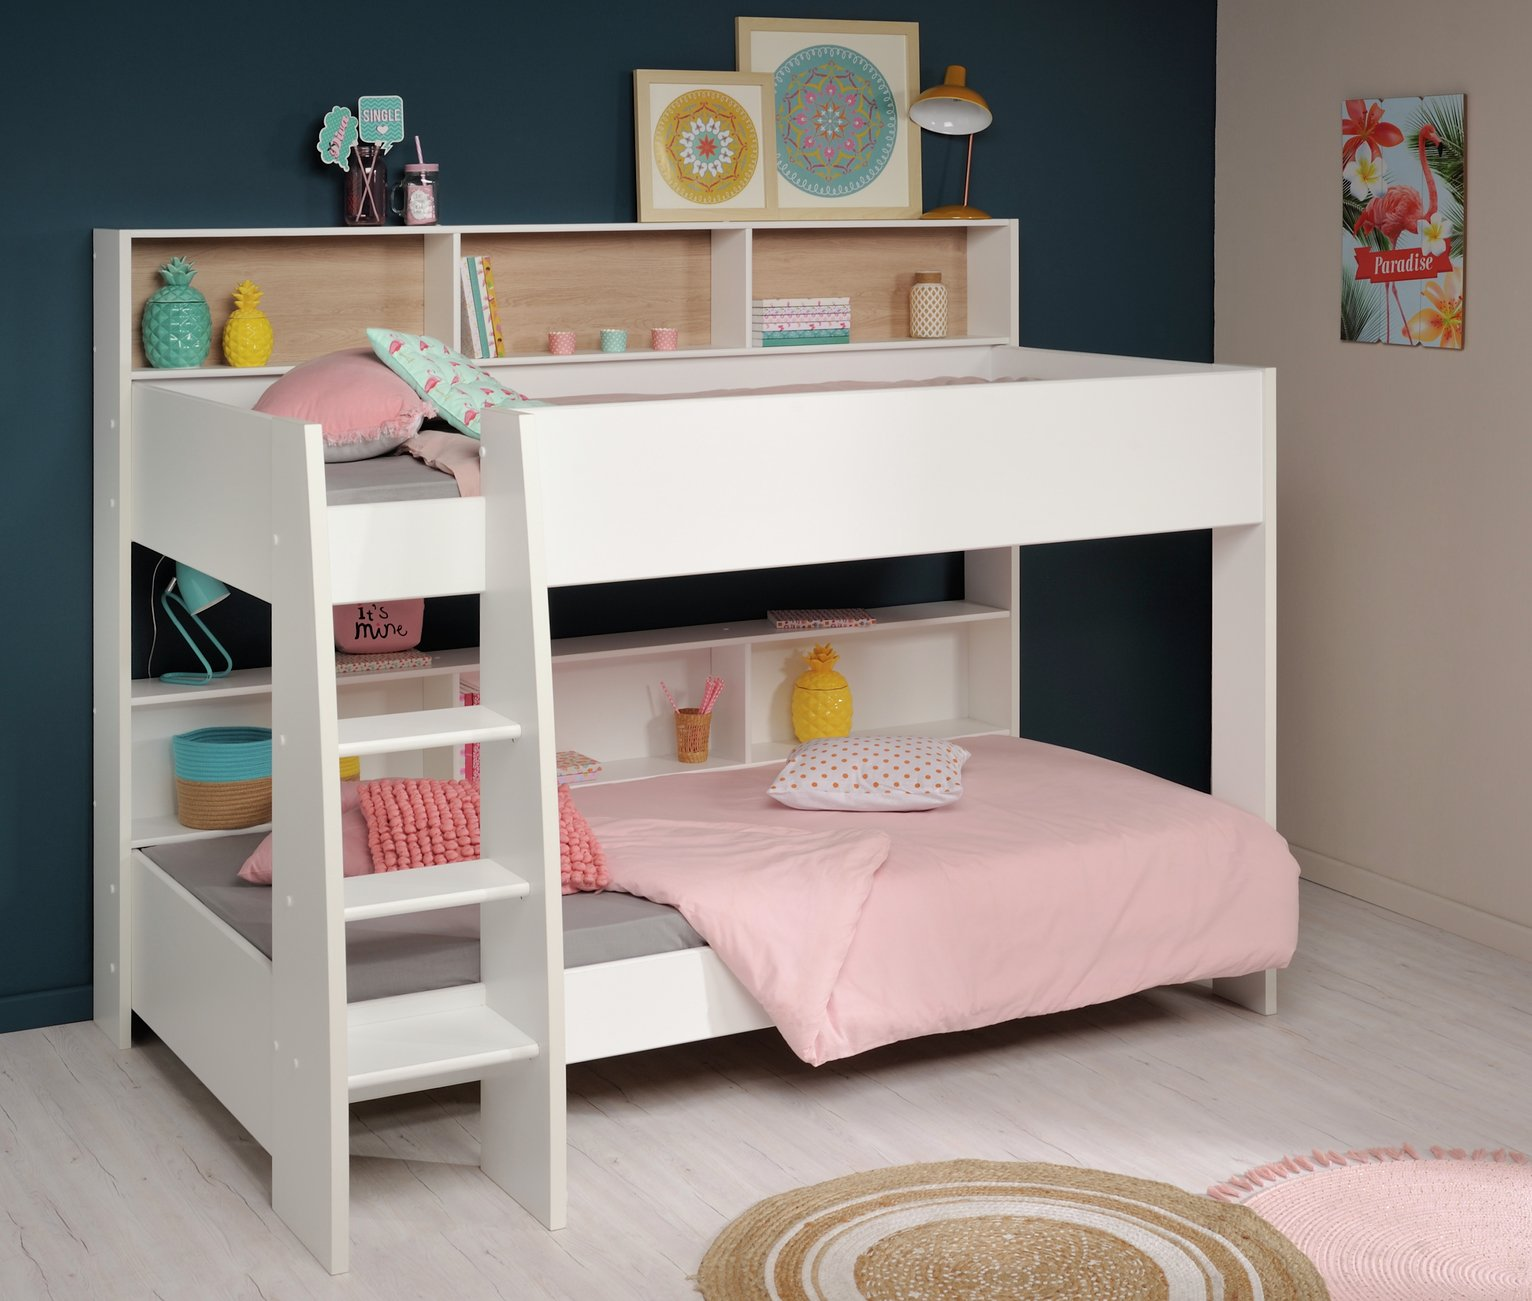 Picture of: Parisot Leo Bunk Bed White 9312878 Argos Price Tracker Pricehistory Co Uk